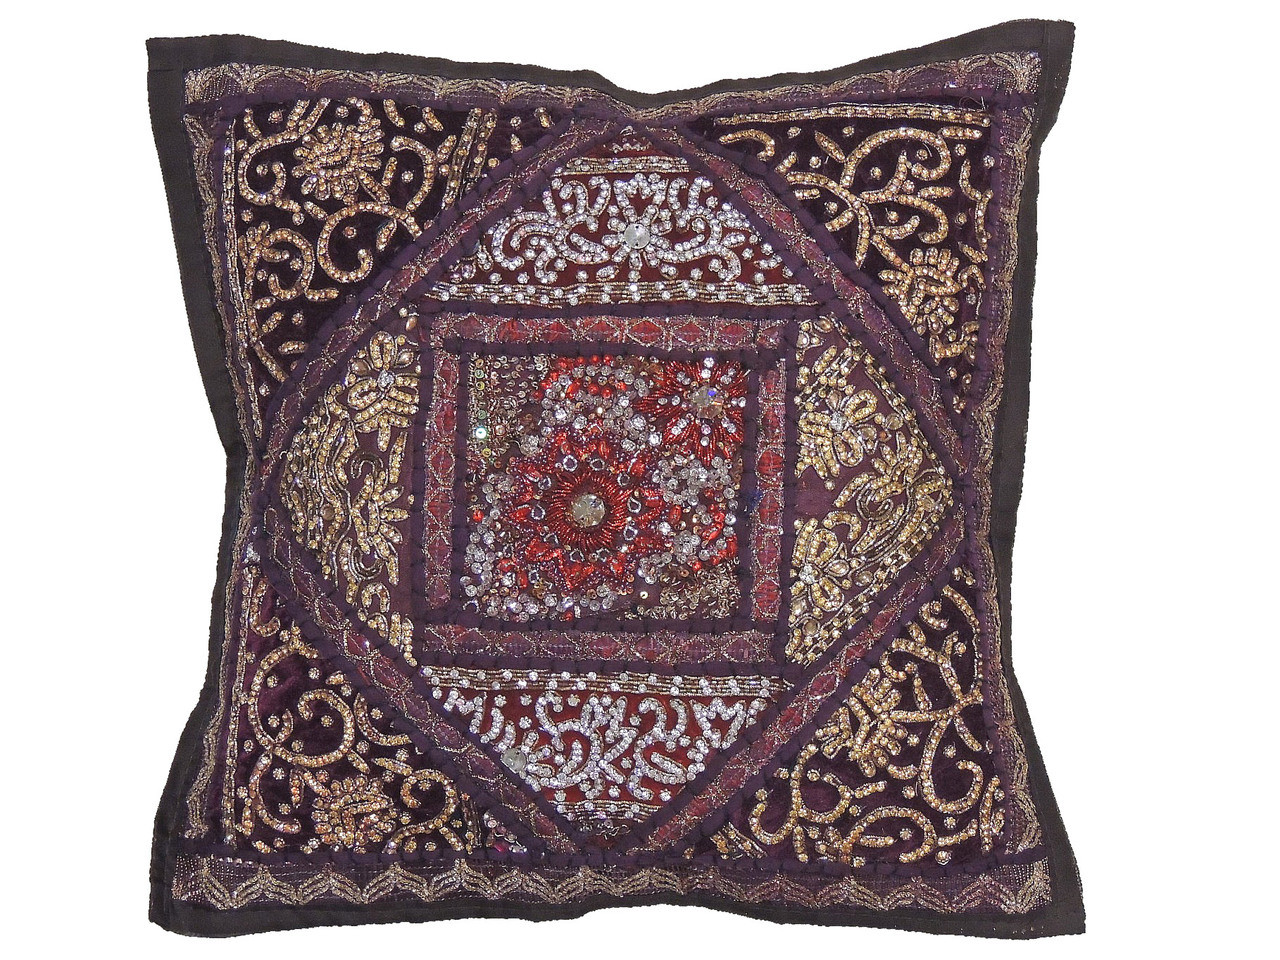 Brown decorative living room pillow cover beaded couch cushion 16 novahaat for Decorative accent pillows living room